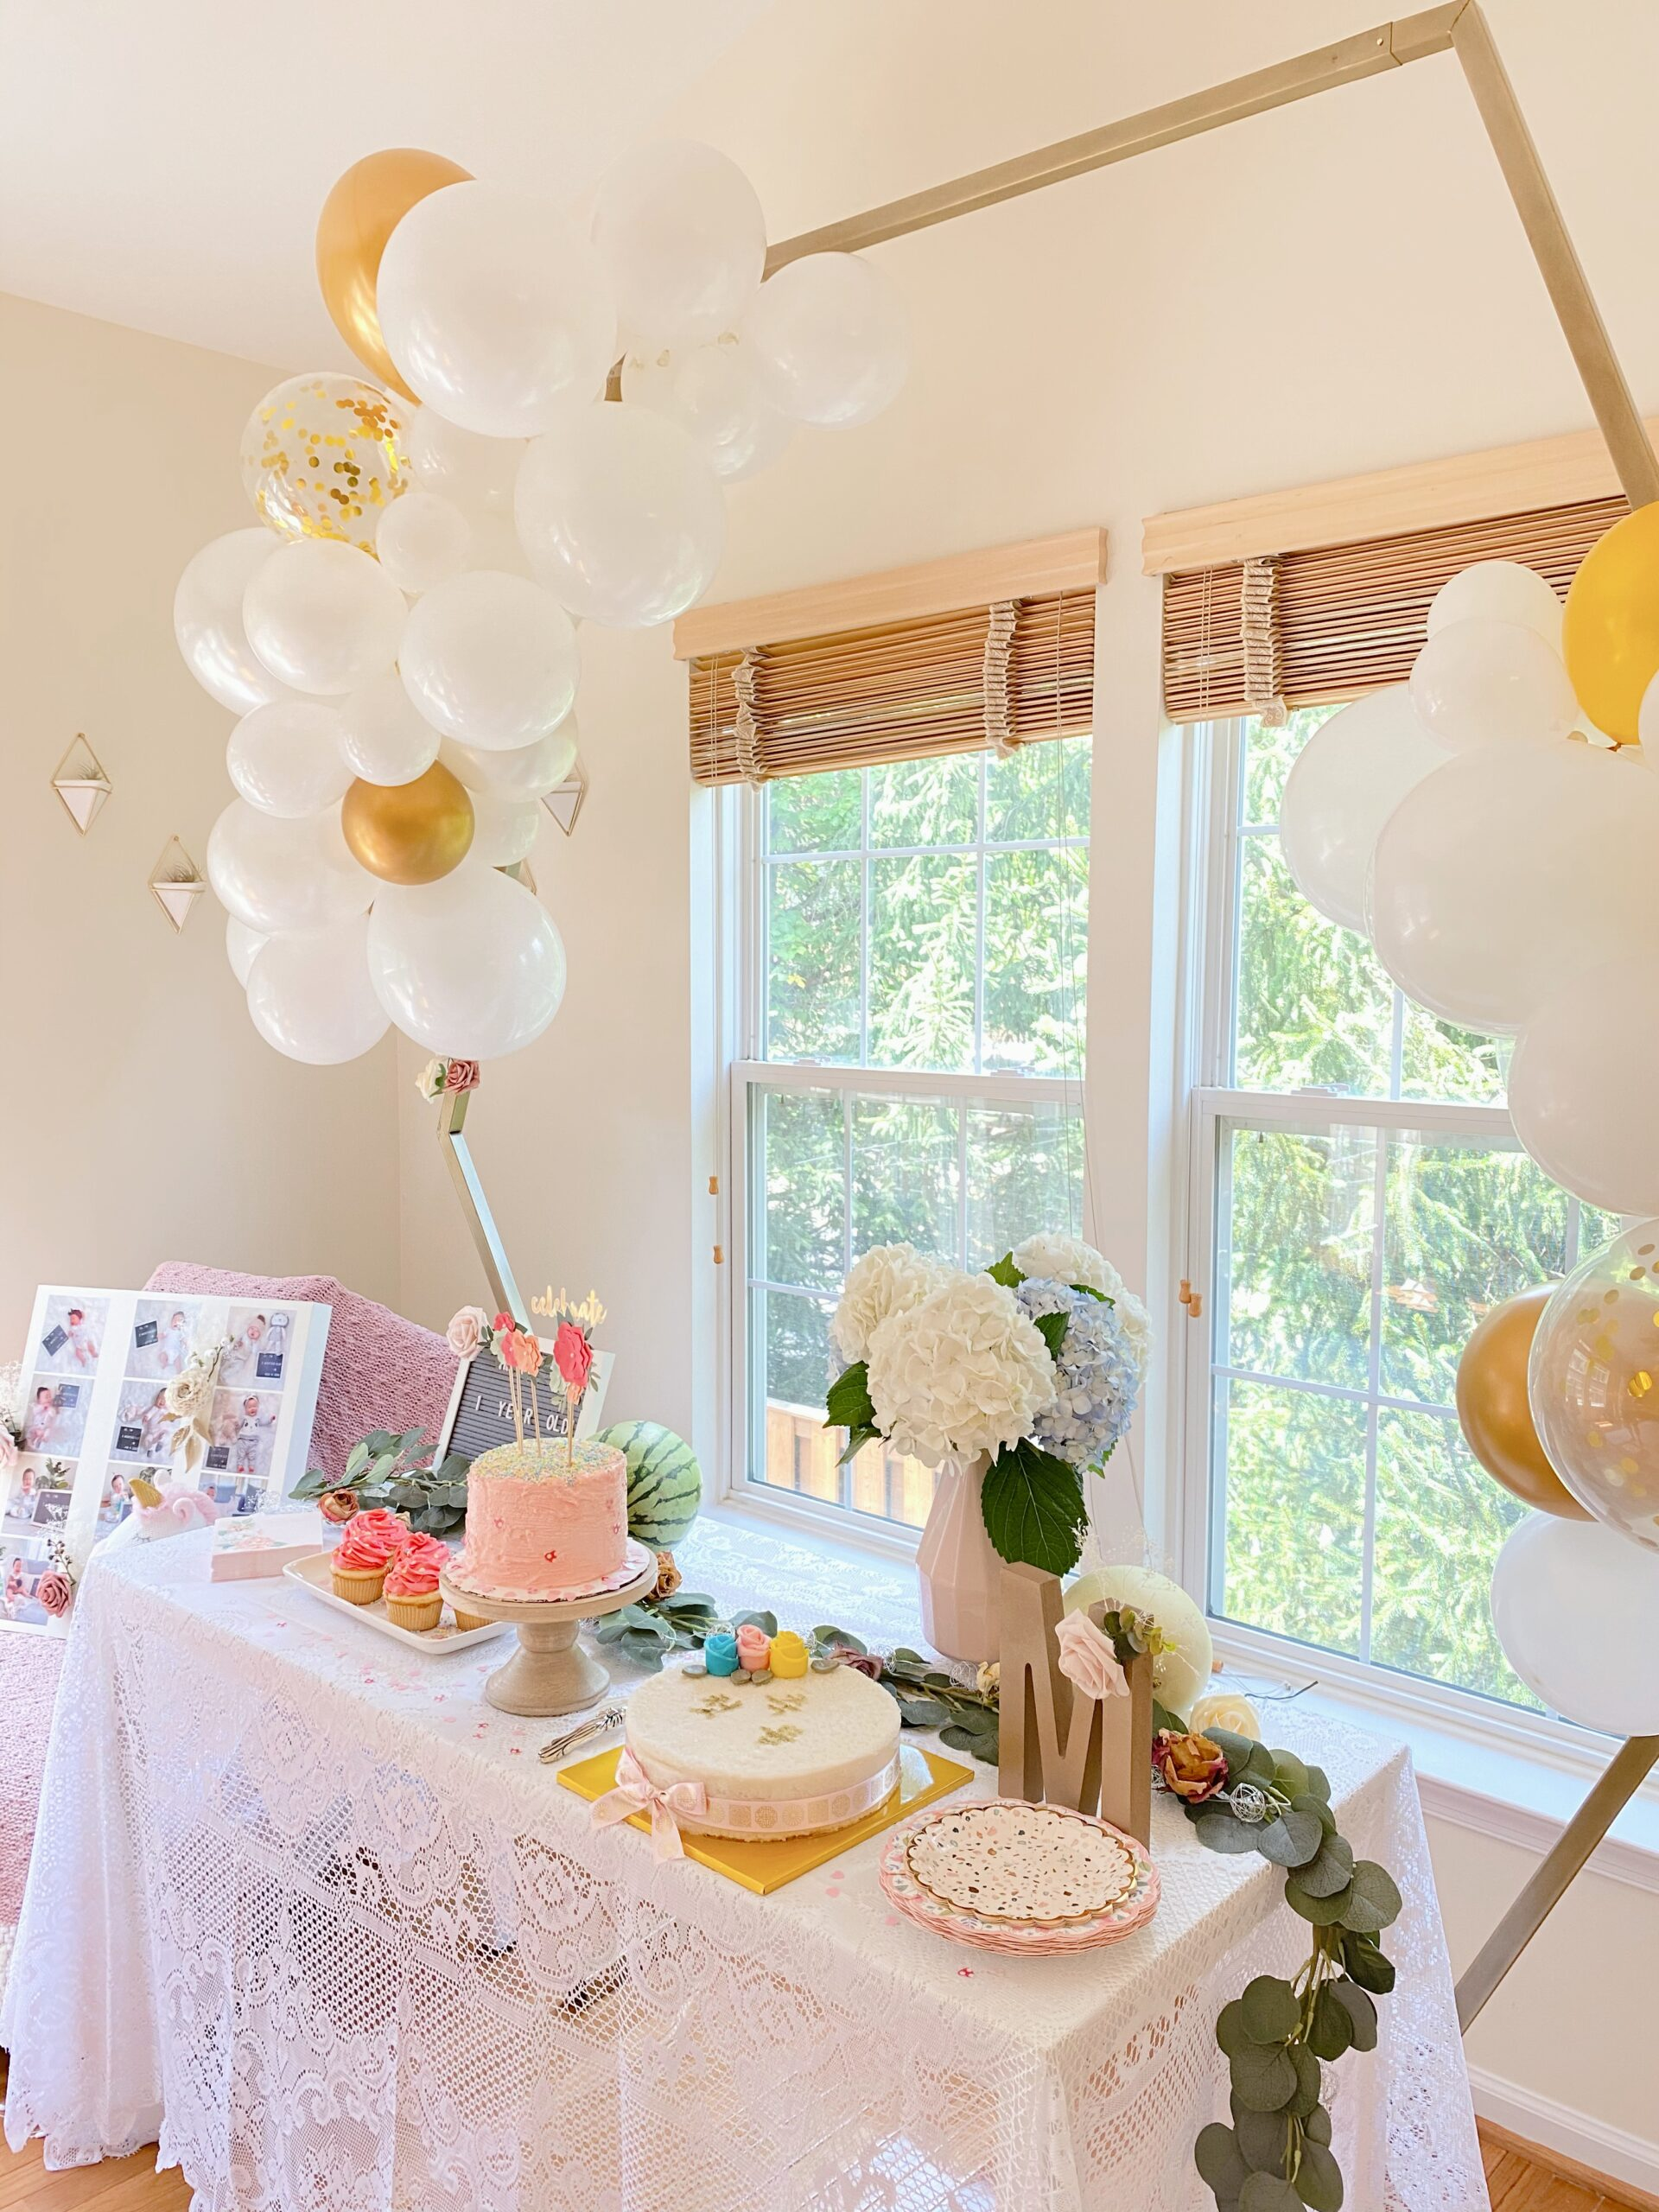 How to Plan A Budget-Friendly Birthday Party